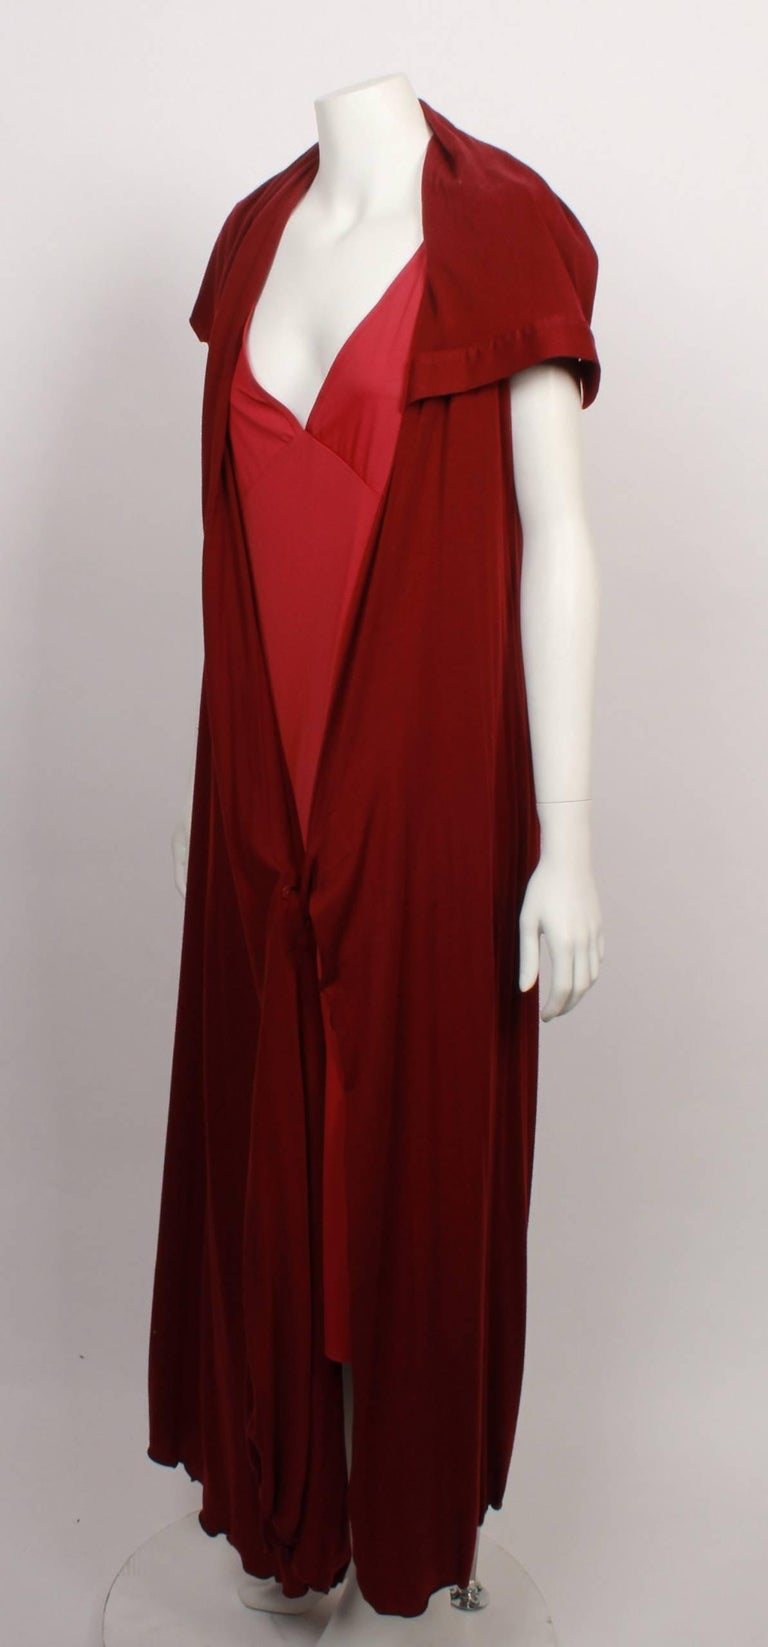 Issey Miyake timeless long stretch jersey raspberry coloured wrap dress with matching under slip. Features asymmetrical wide shawl collar, short extended sleeve and feminine flared hemline. Has a flaw in dress. Made in Japan.